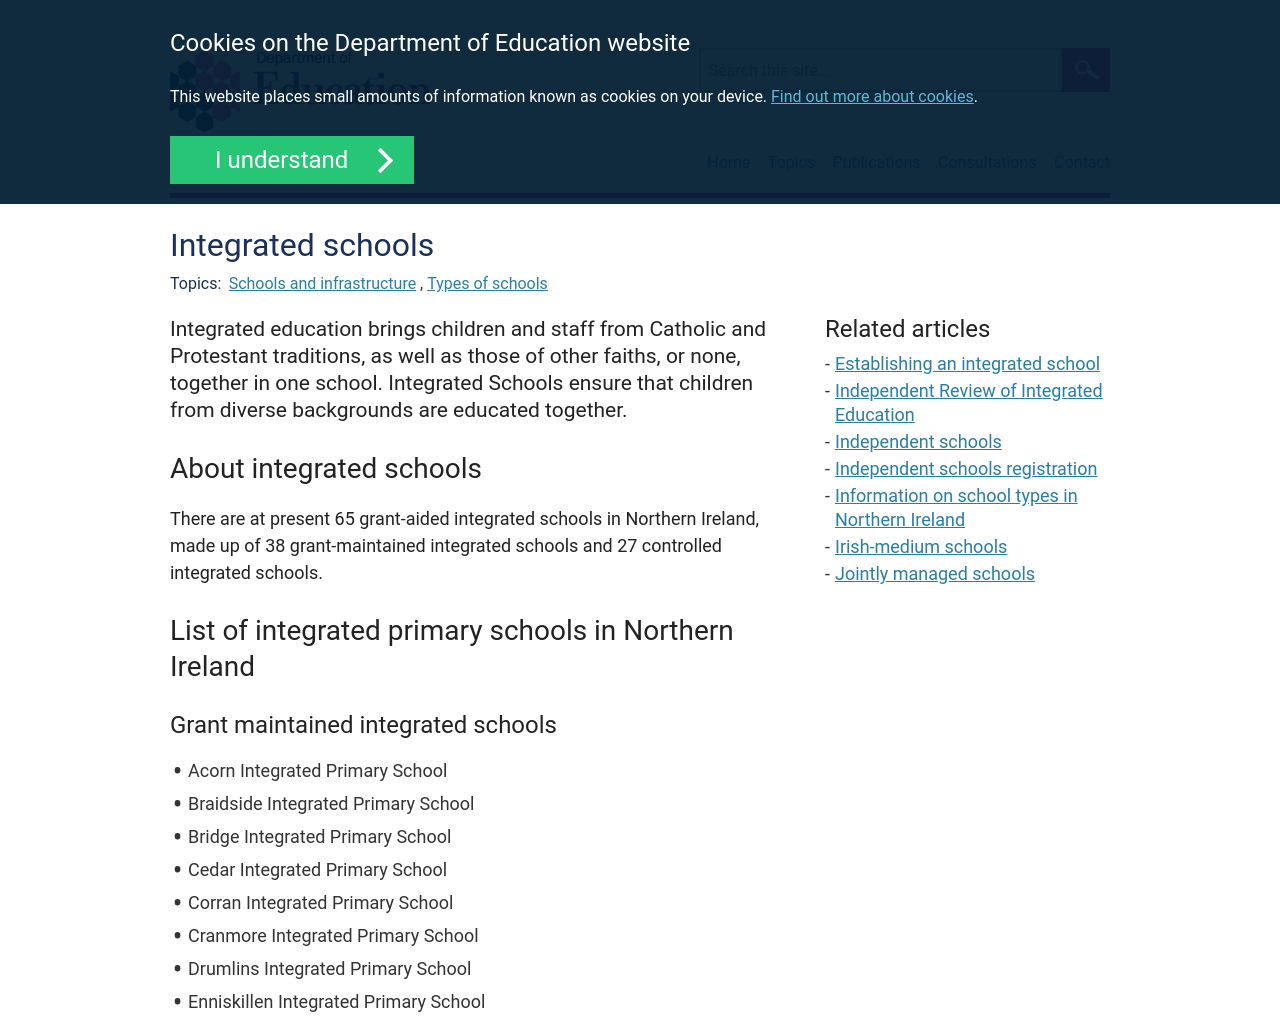 DENI Information on Integrated Schools